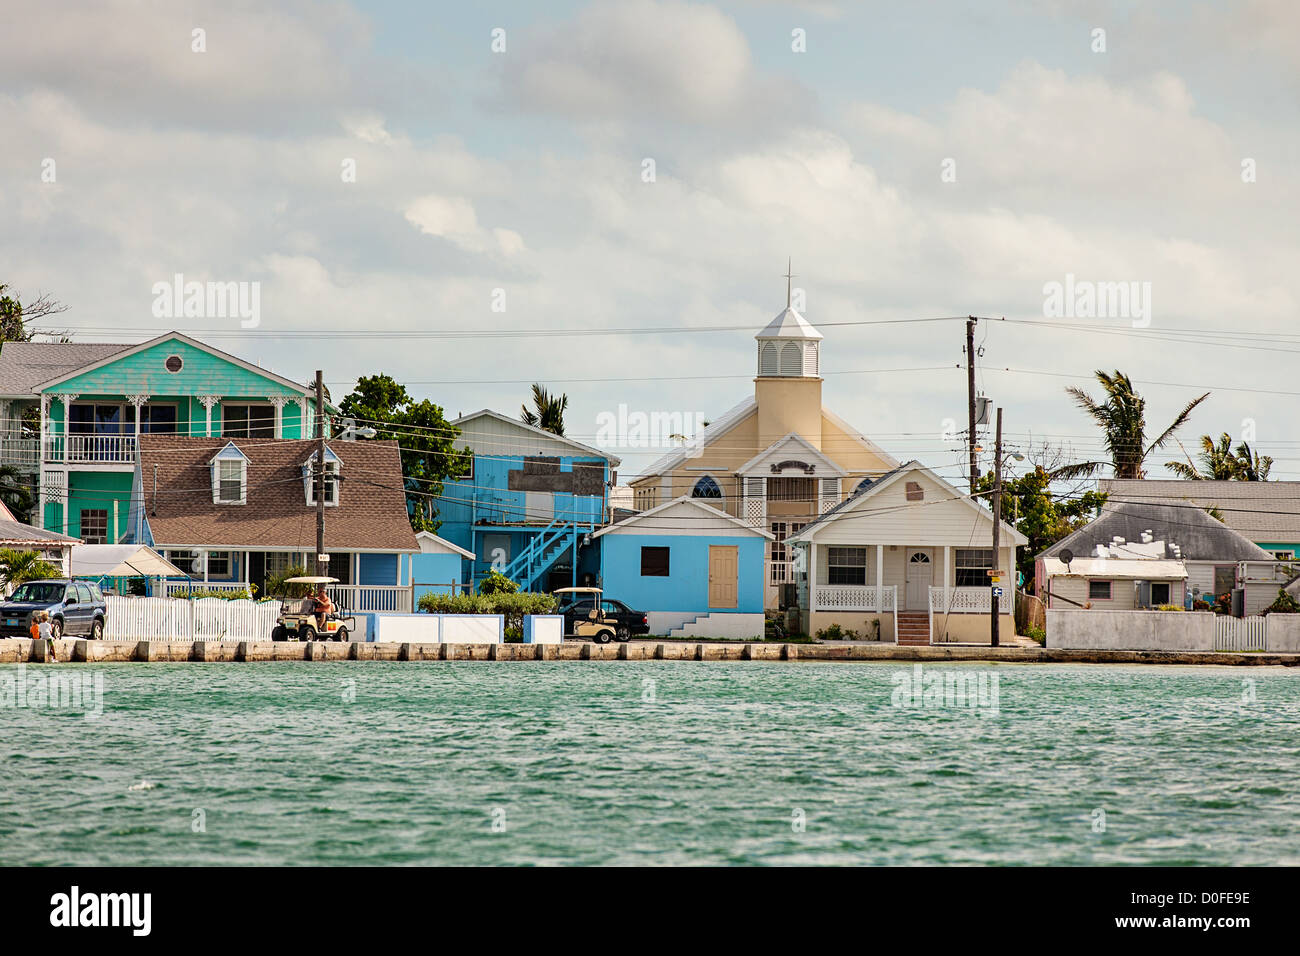 House rentals green turtle cay - Stock Photo The Loyalist Village Of New Plymouth Green Turtle Cay Bahamas